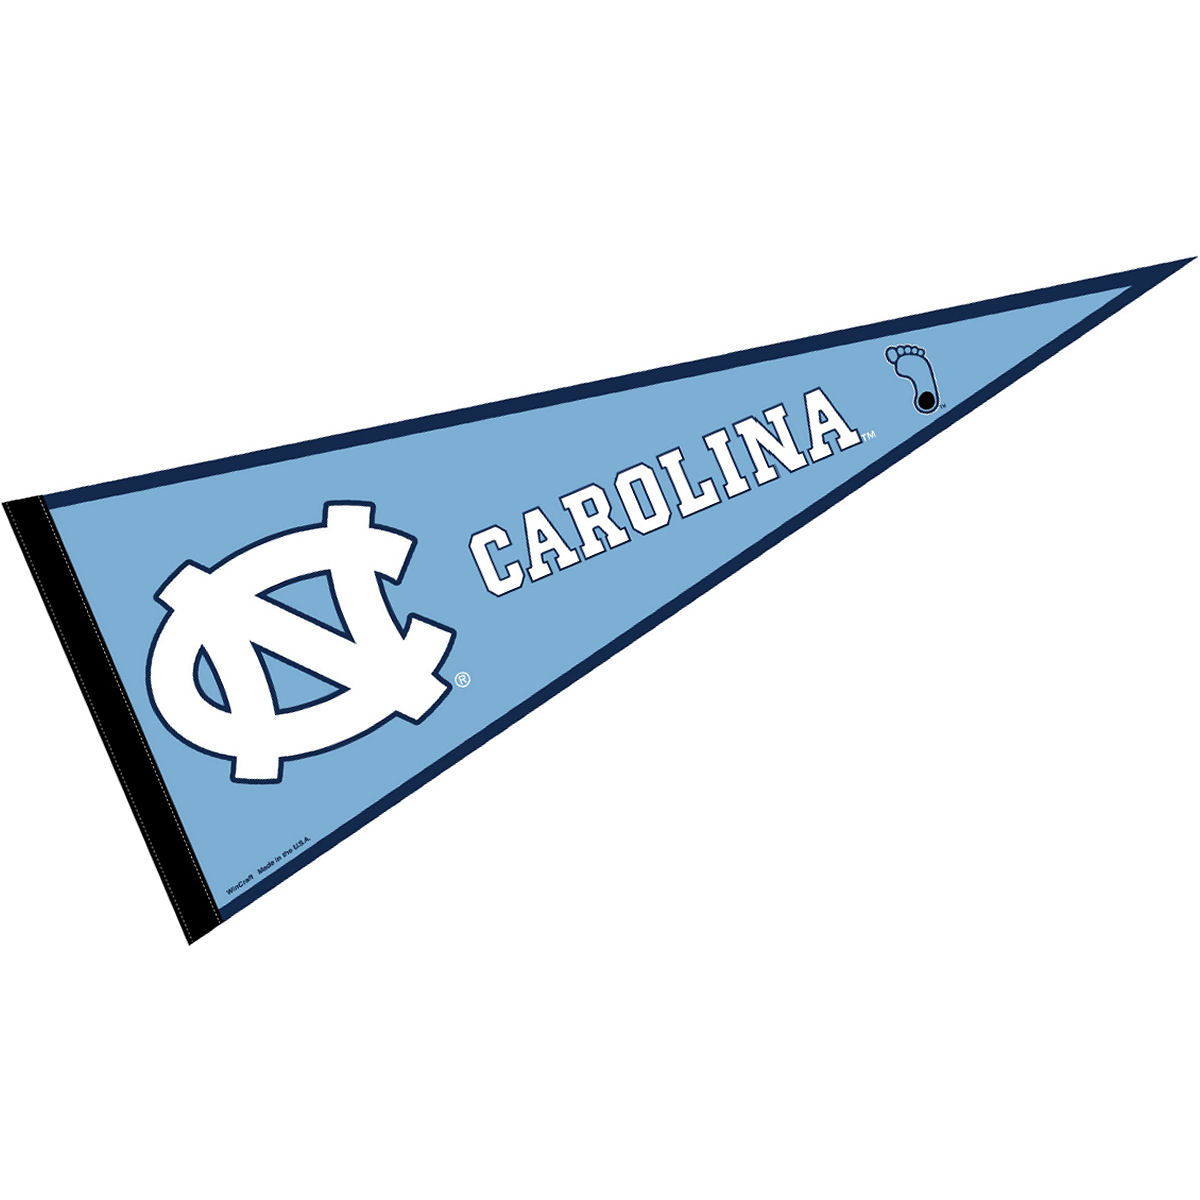 "North Carolina Tar Heels 12"" X 30"" Felt College Pennant"